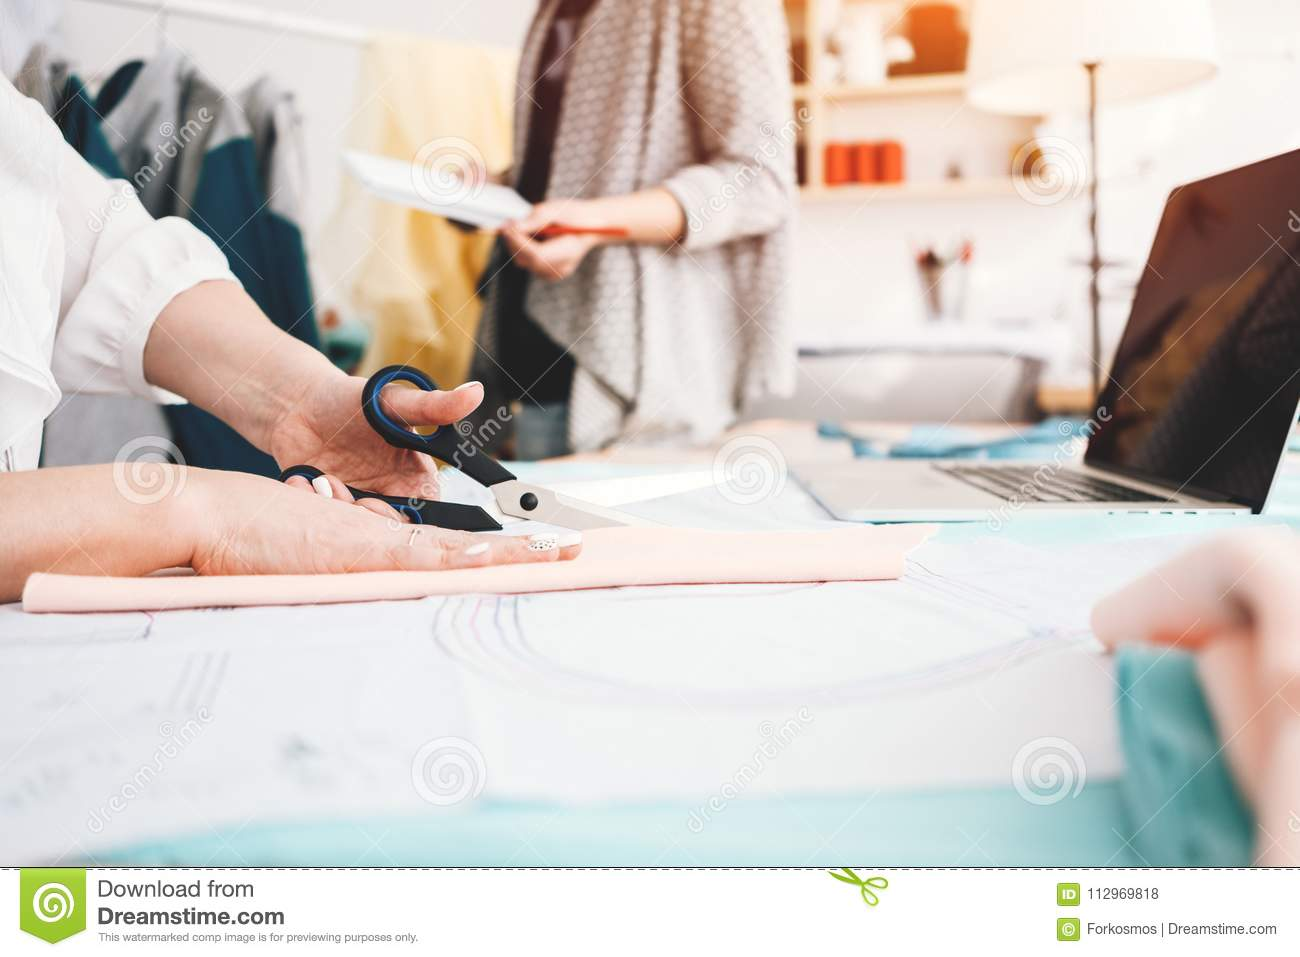 Bureau Designer Two Young Clothing Designer Working With Fabric And Laptop In